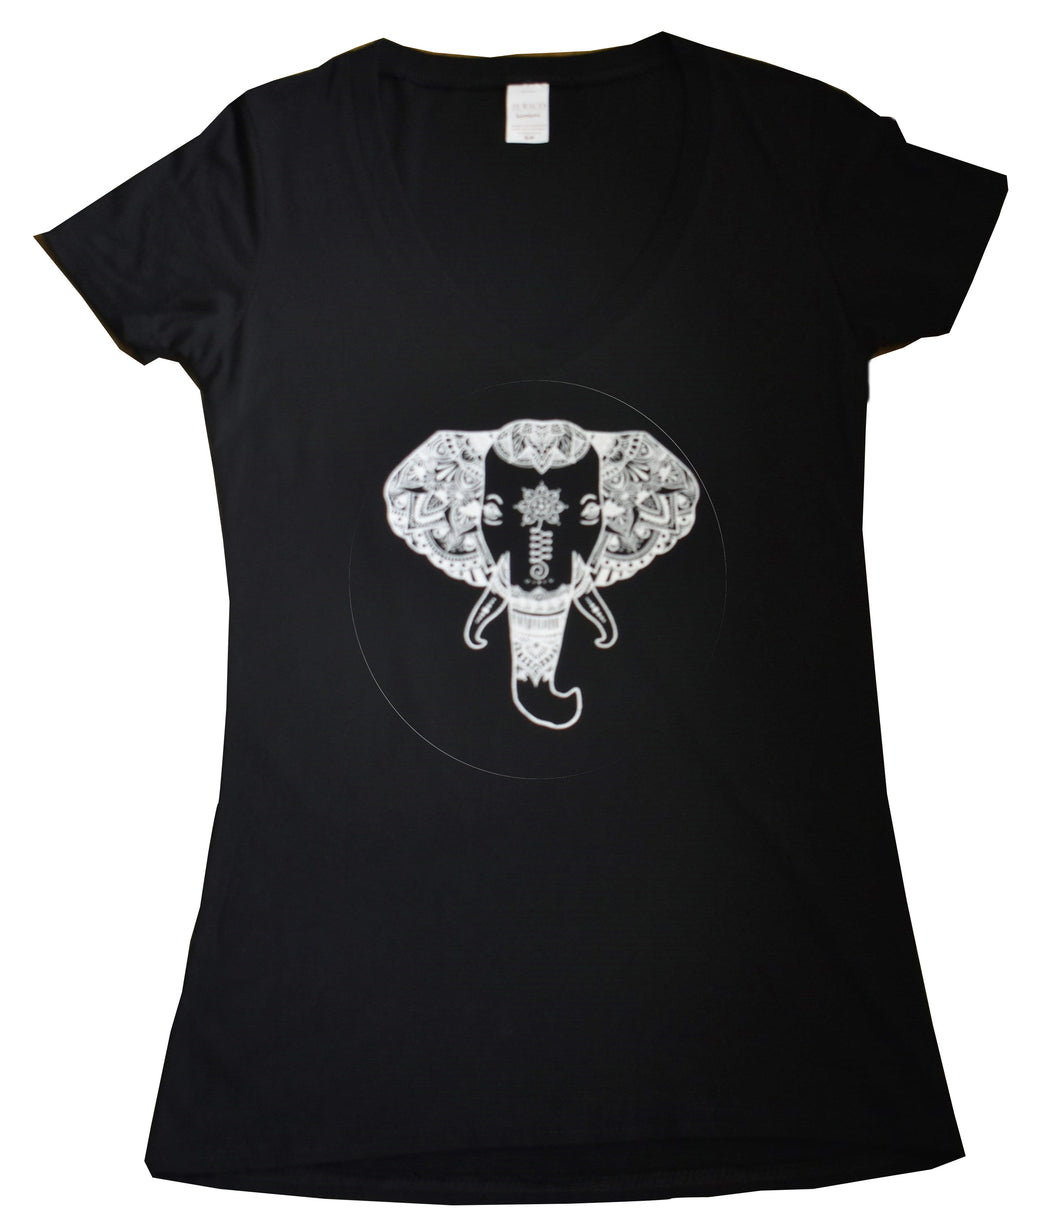 Women's Black V-Neck White Elephant Design